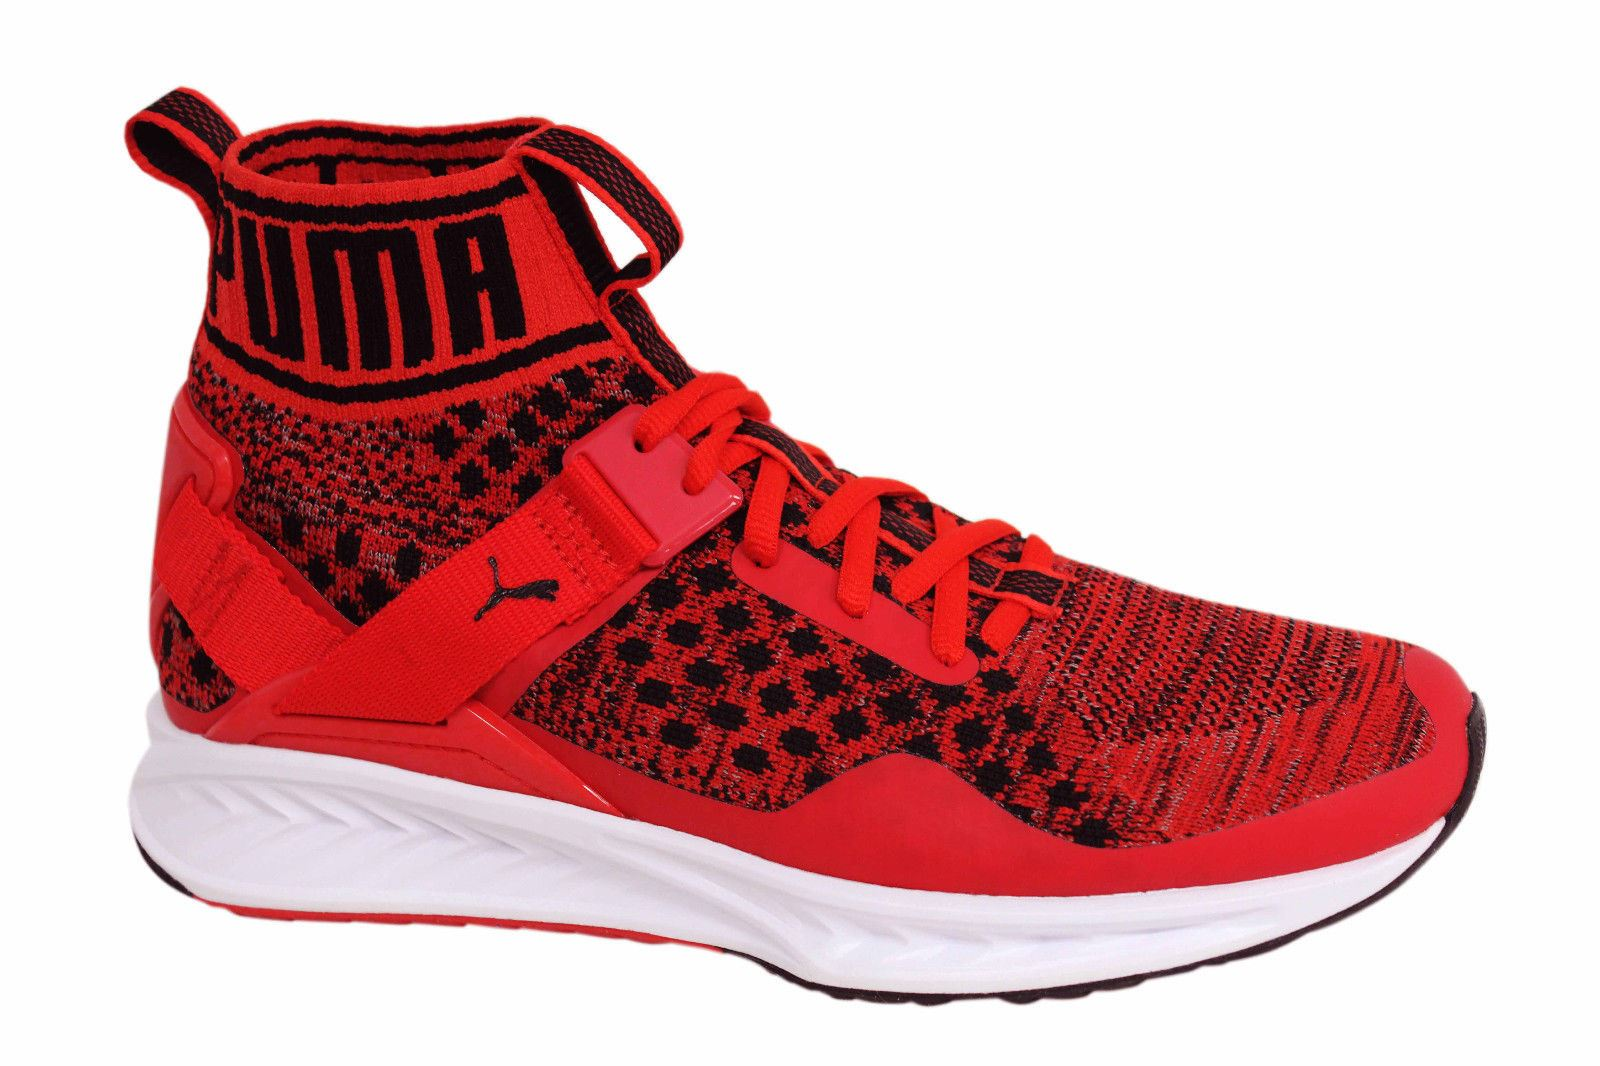 Men's Red Evo Knit Trainers